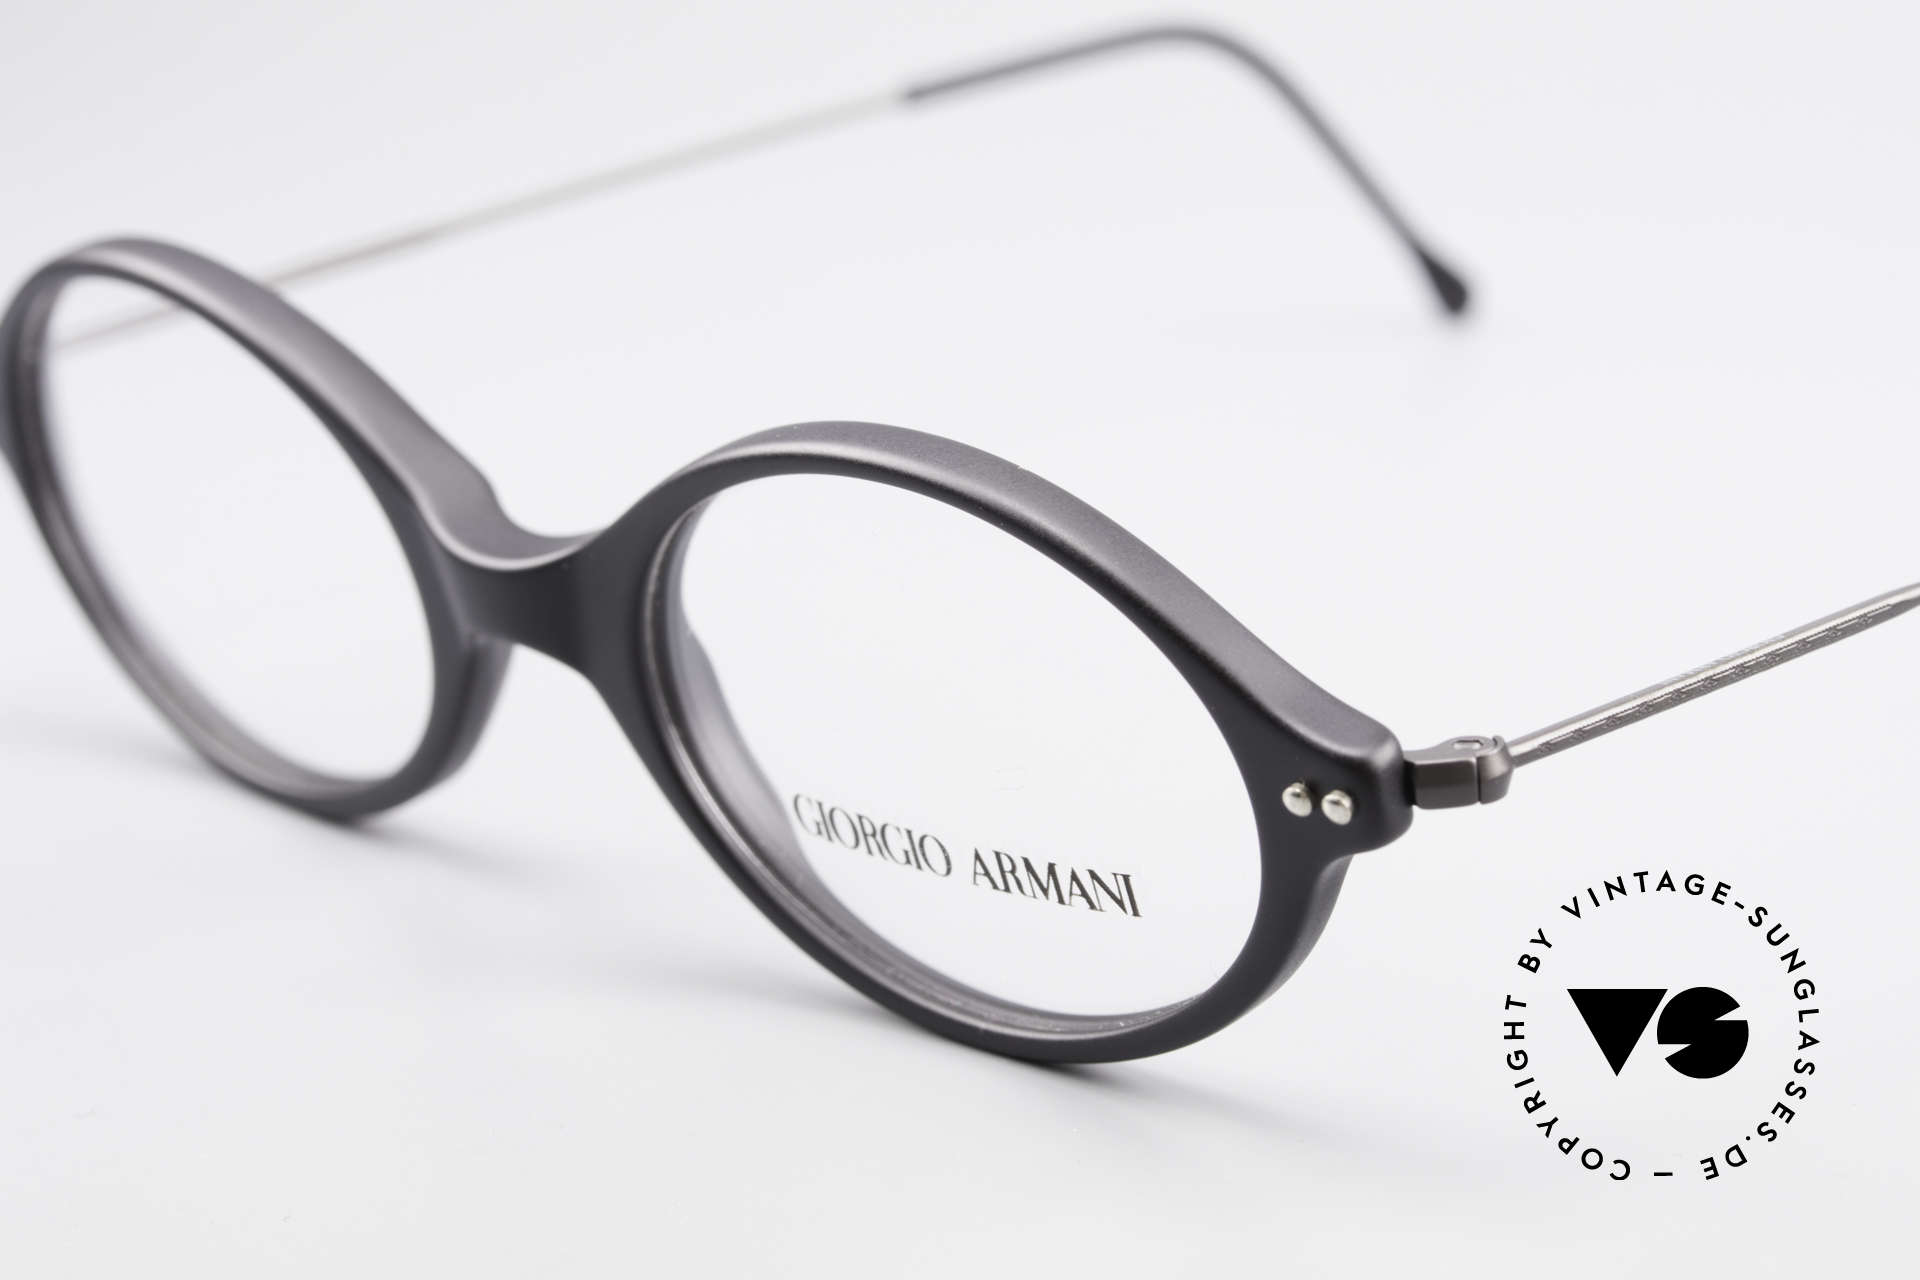 Giorgio Armani 378 90's Vintage Unisex Frame Oval, top quality and very comfortable (weighs only 9g), Made for Men and Women